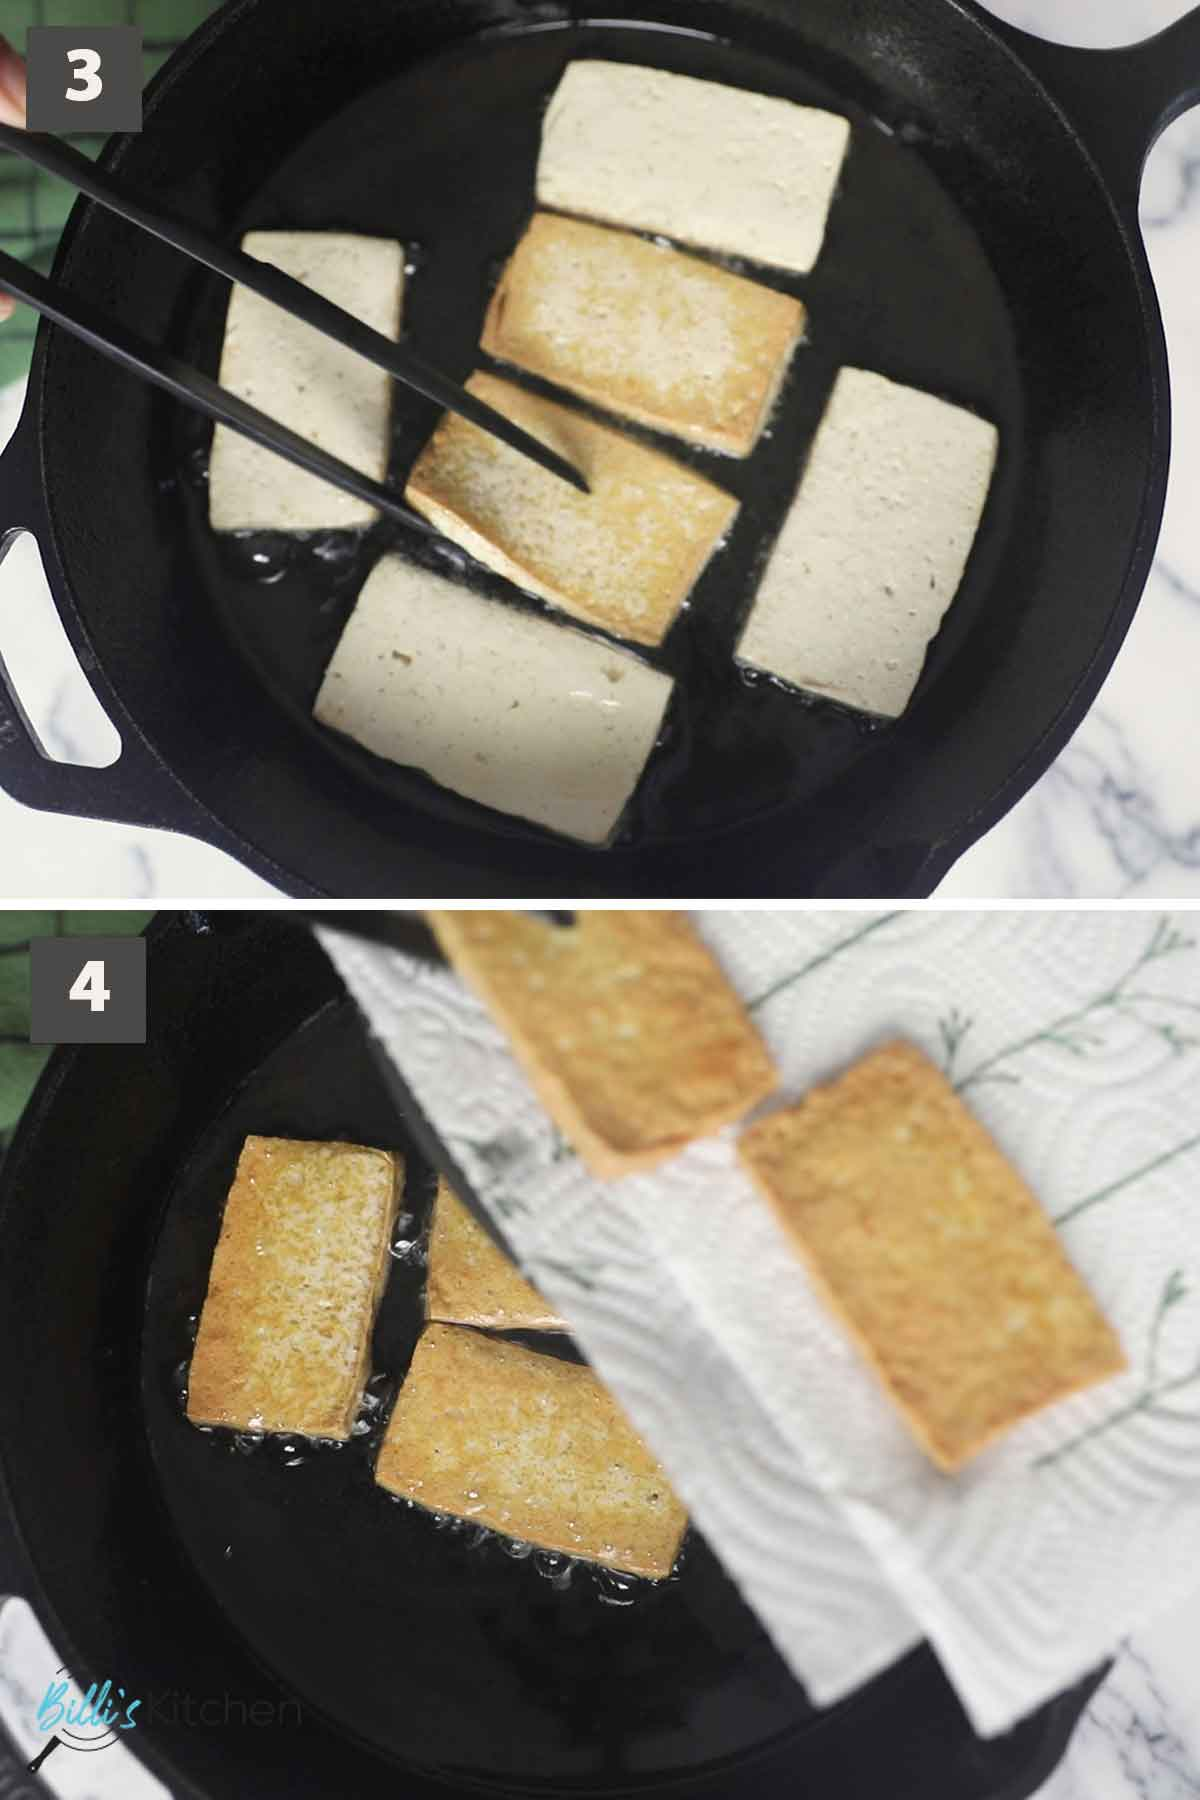 Second part of a collage of images showing the step by step process on how to fry crispy tofu.